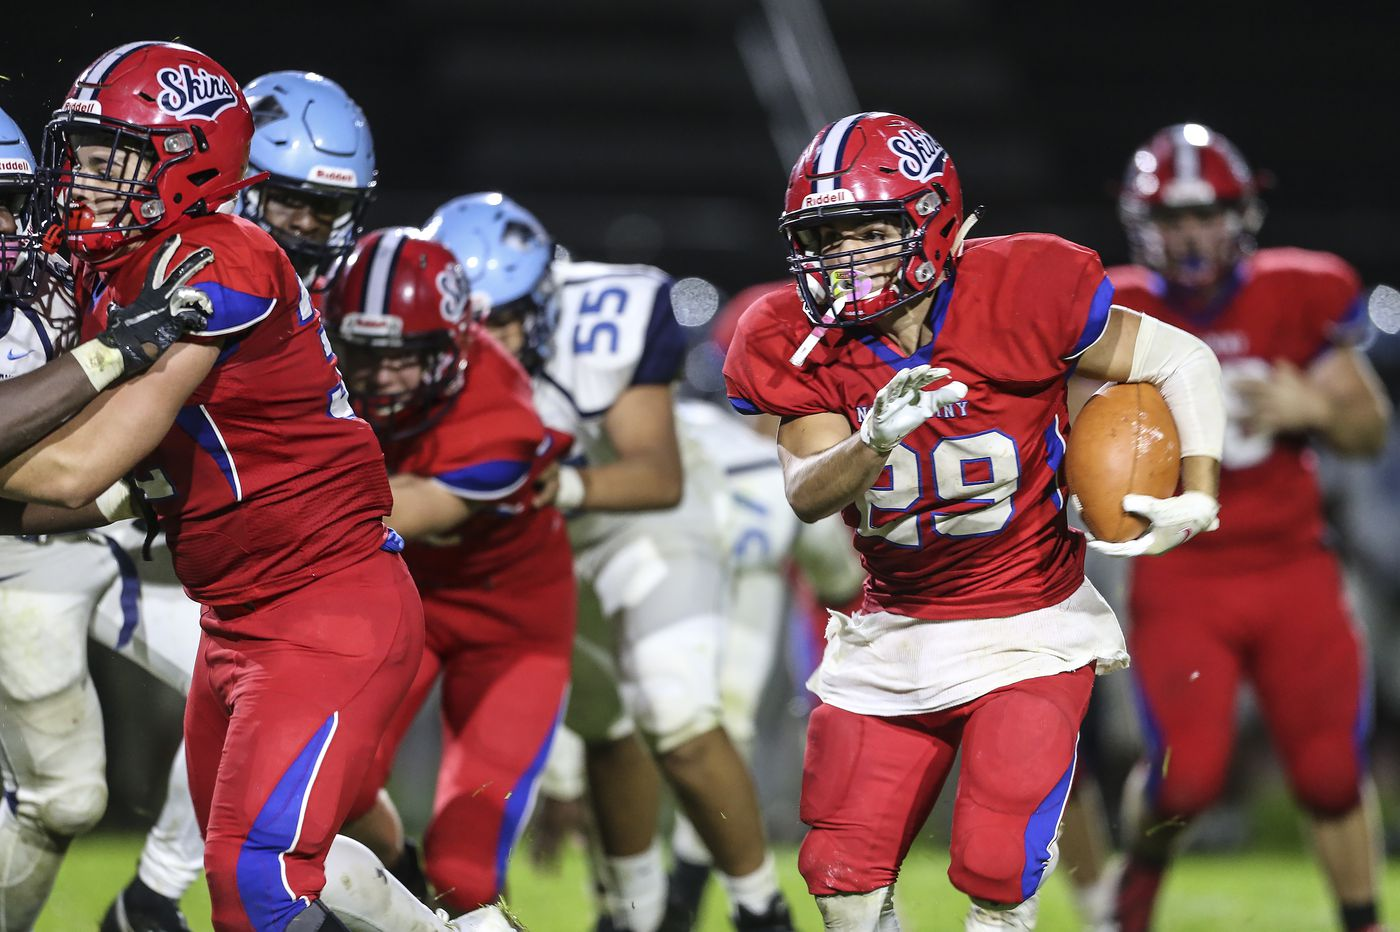 Chris James powers Neshaminy past North Penn, 35-19